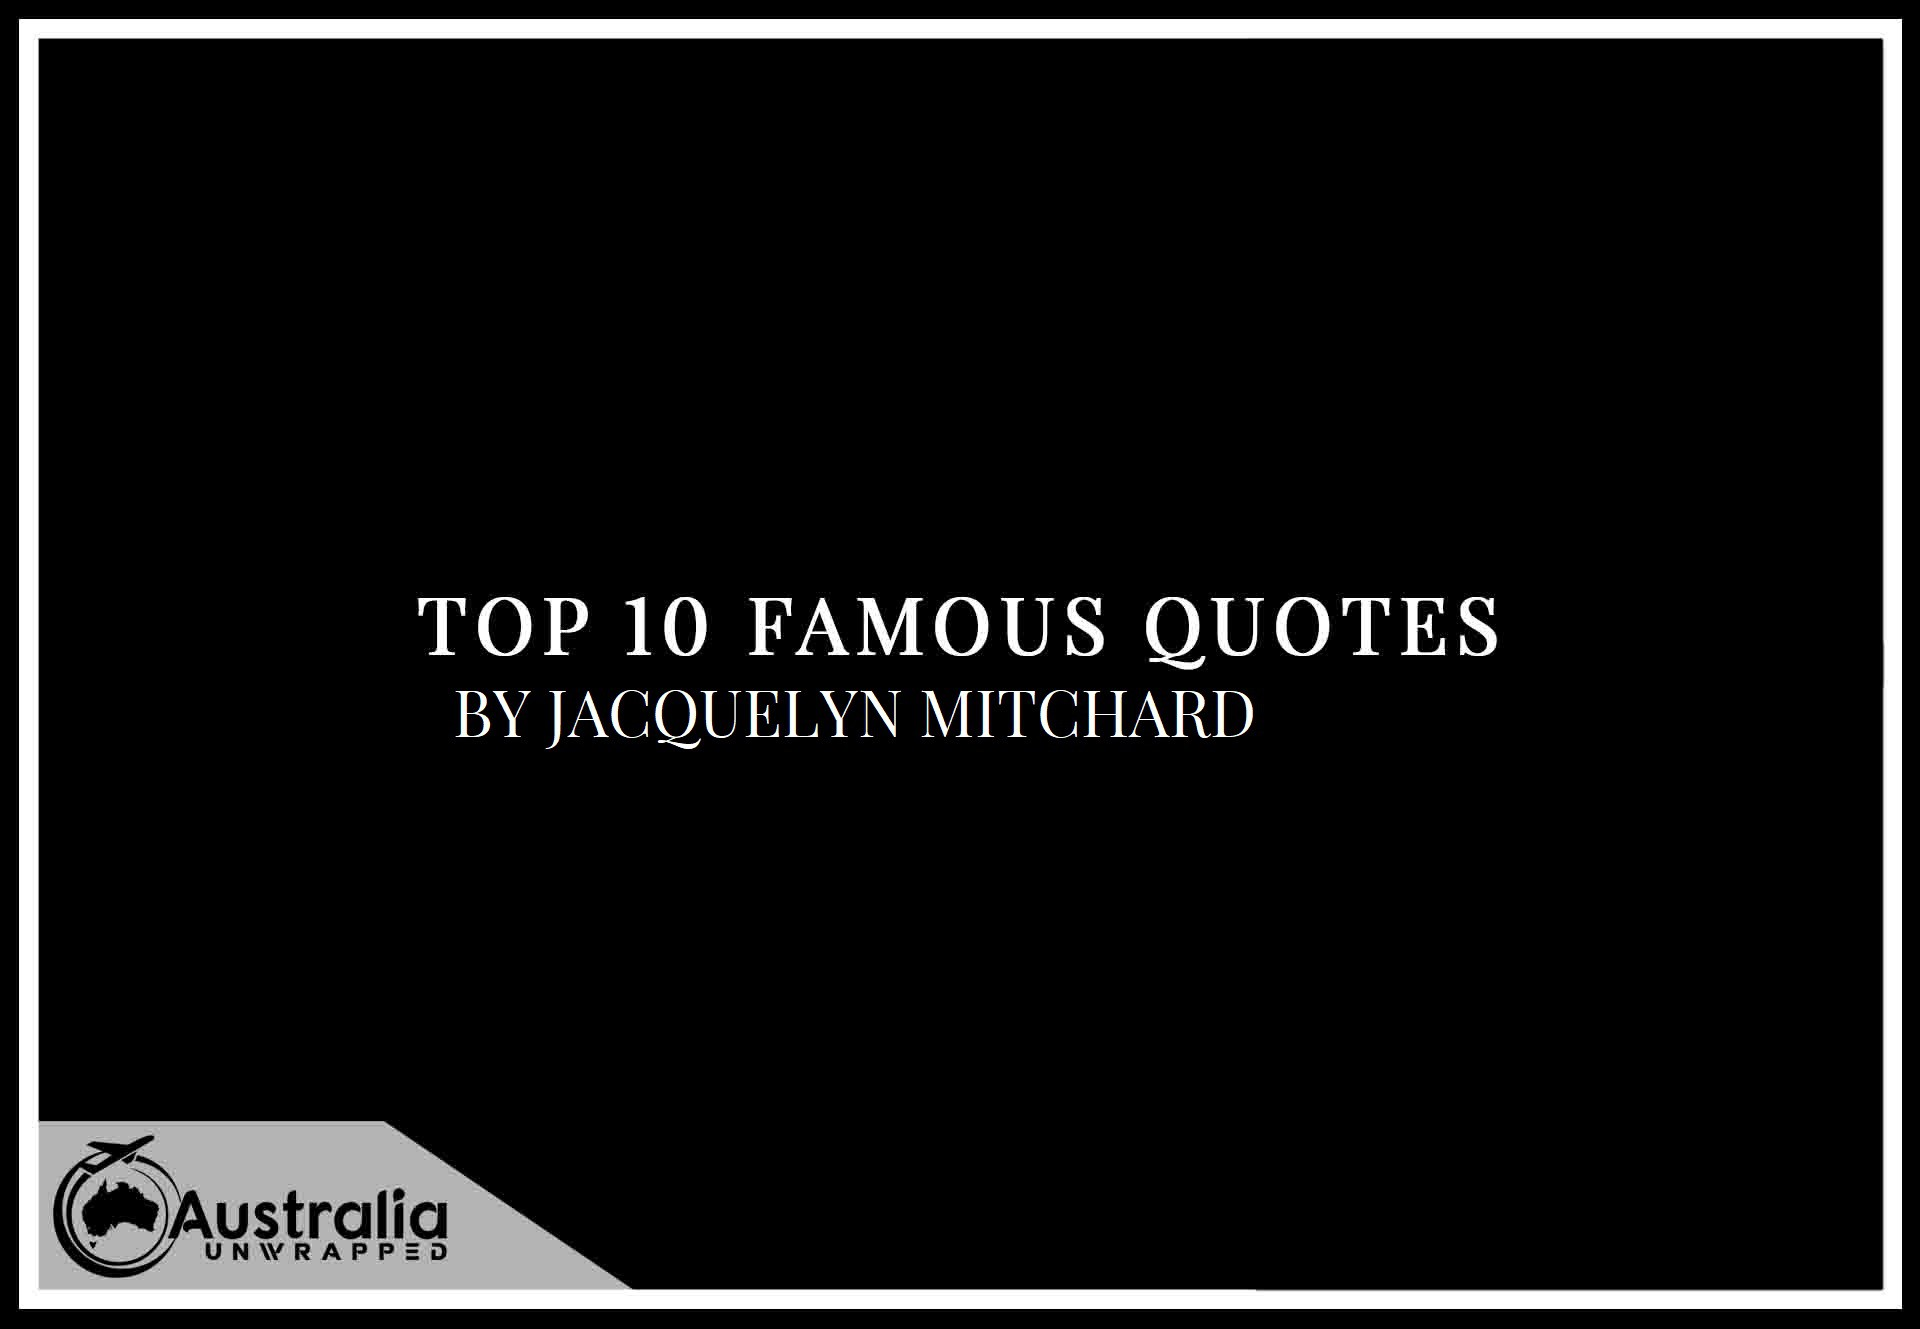 Top 10 Famous Quotes by Author Jacquelyn Mitchard